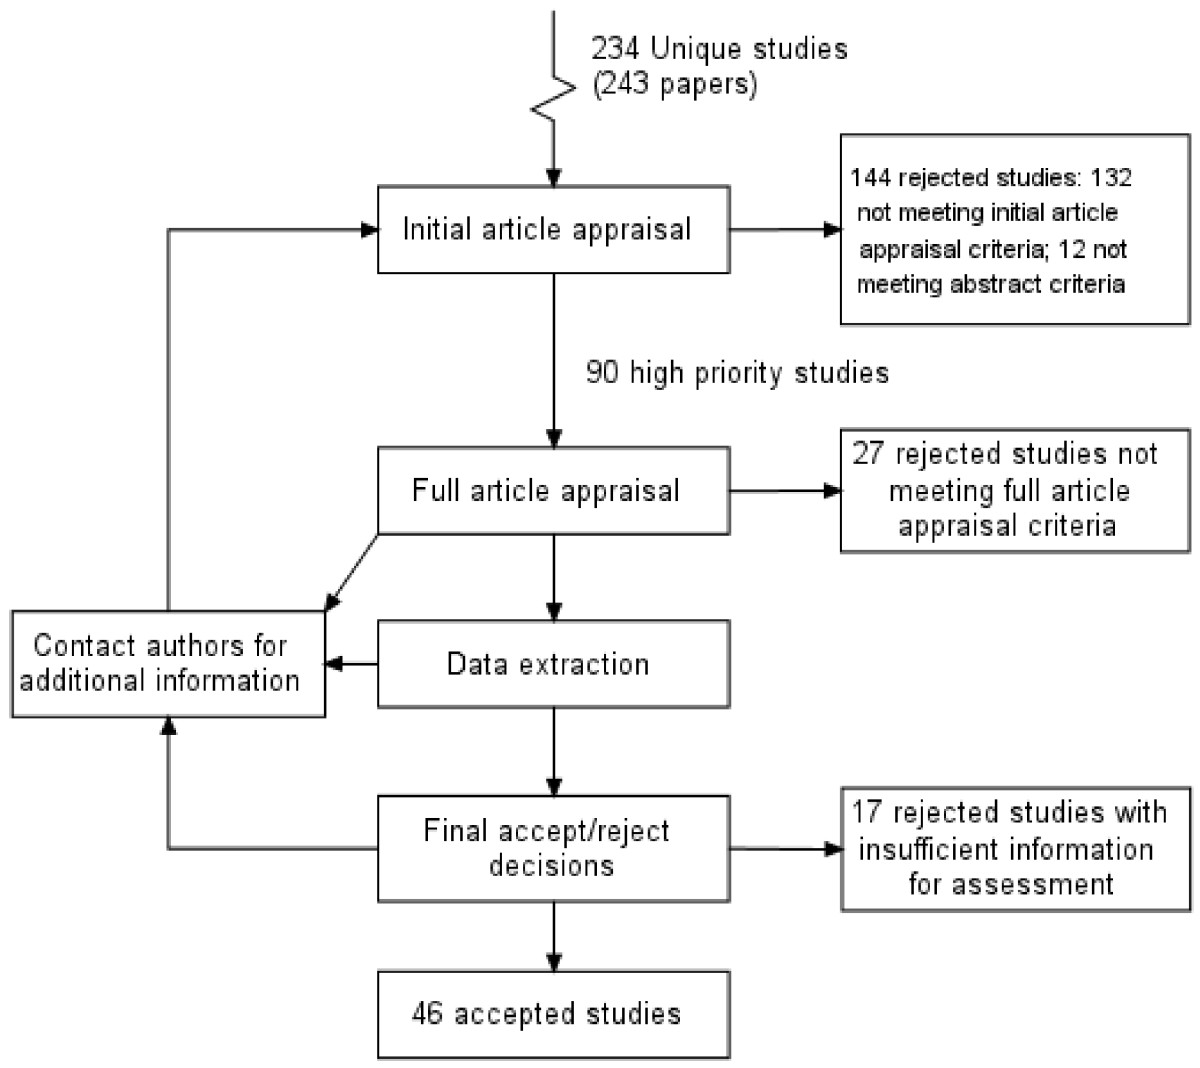 http://static-content.springer.com/image/art%3A10.1186%2F1471-2288-7-49/MediaObjects/12874_2007_Article_232_Fig4_HTML.jpg